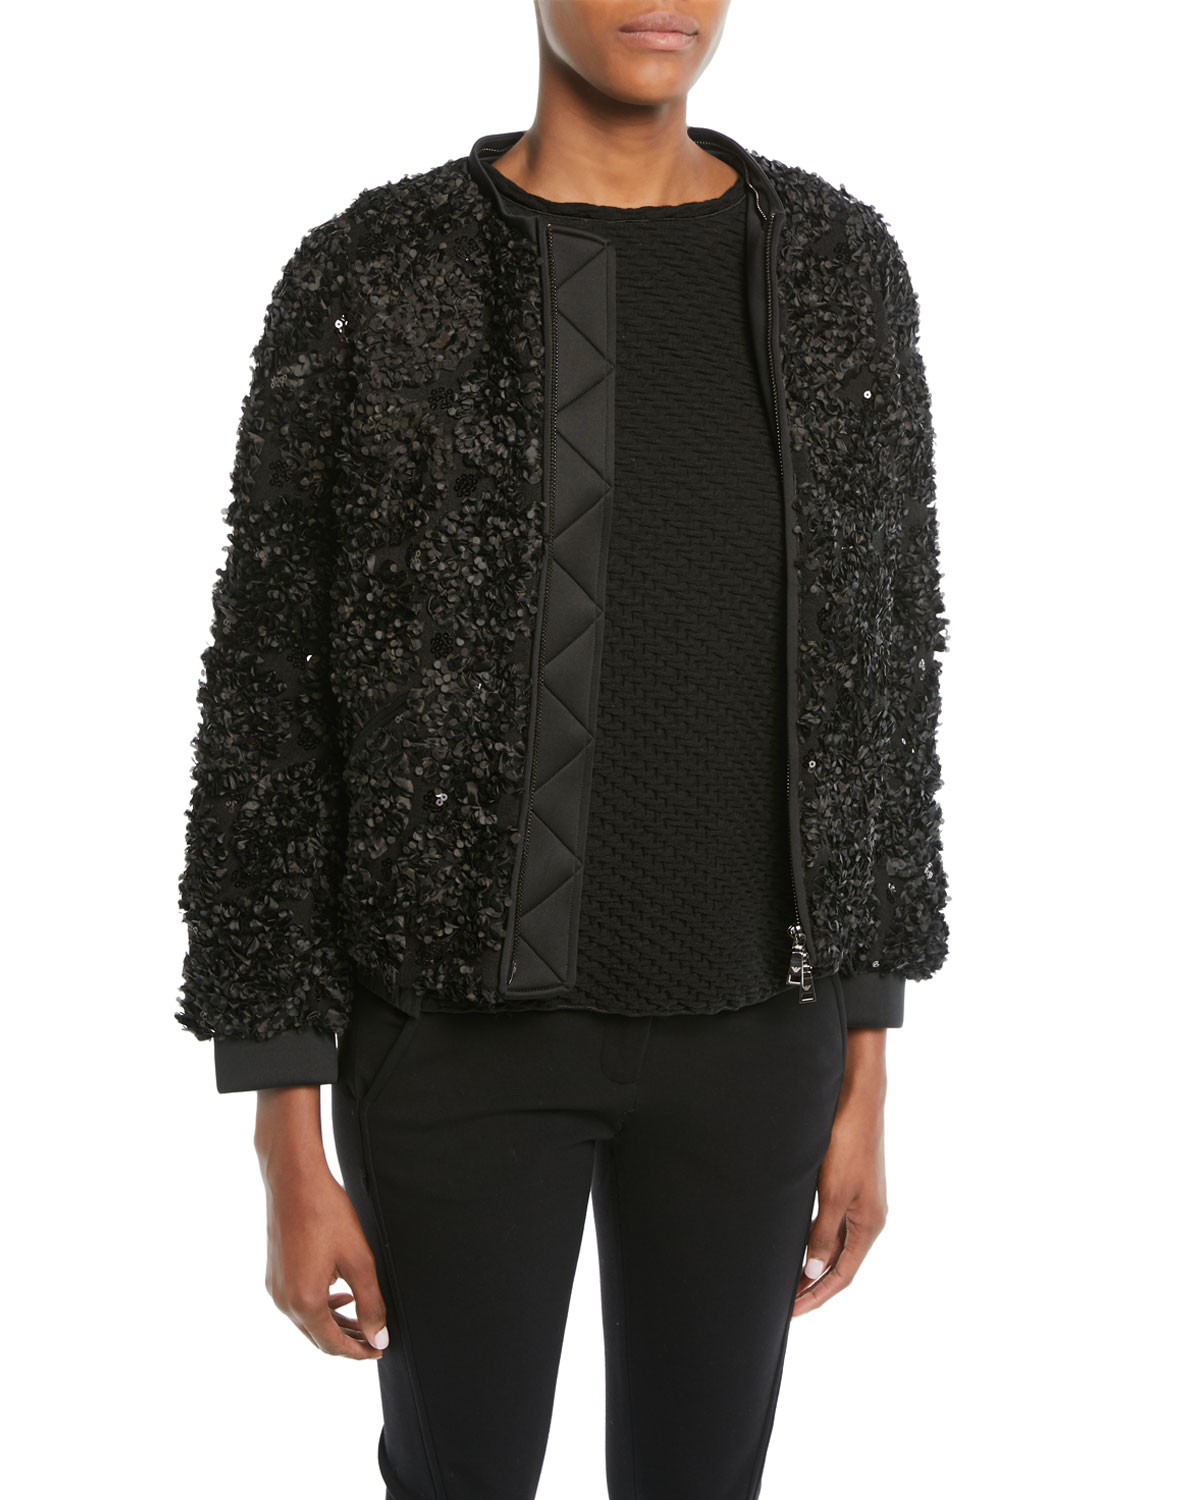 Emporio ArmaniEmbellished Zip-Front Jacket w  Detachable Faux-Fur Trimmed  Hood bbd39e4ceb9